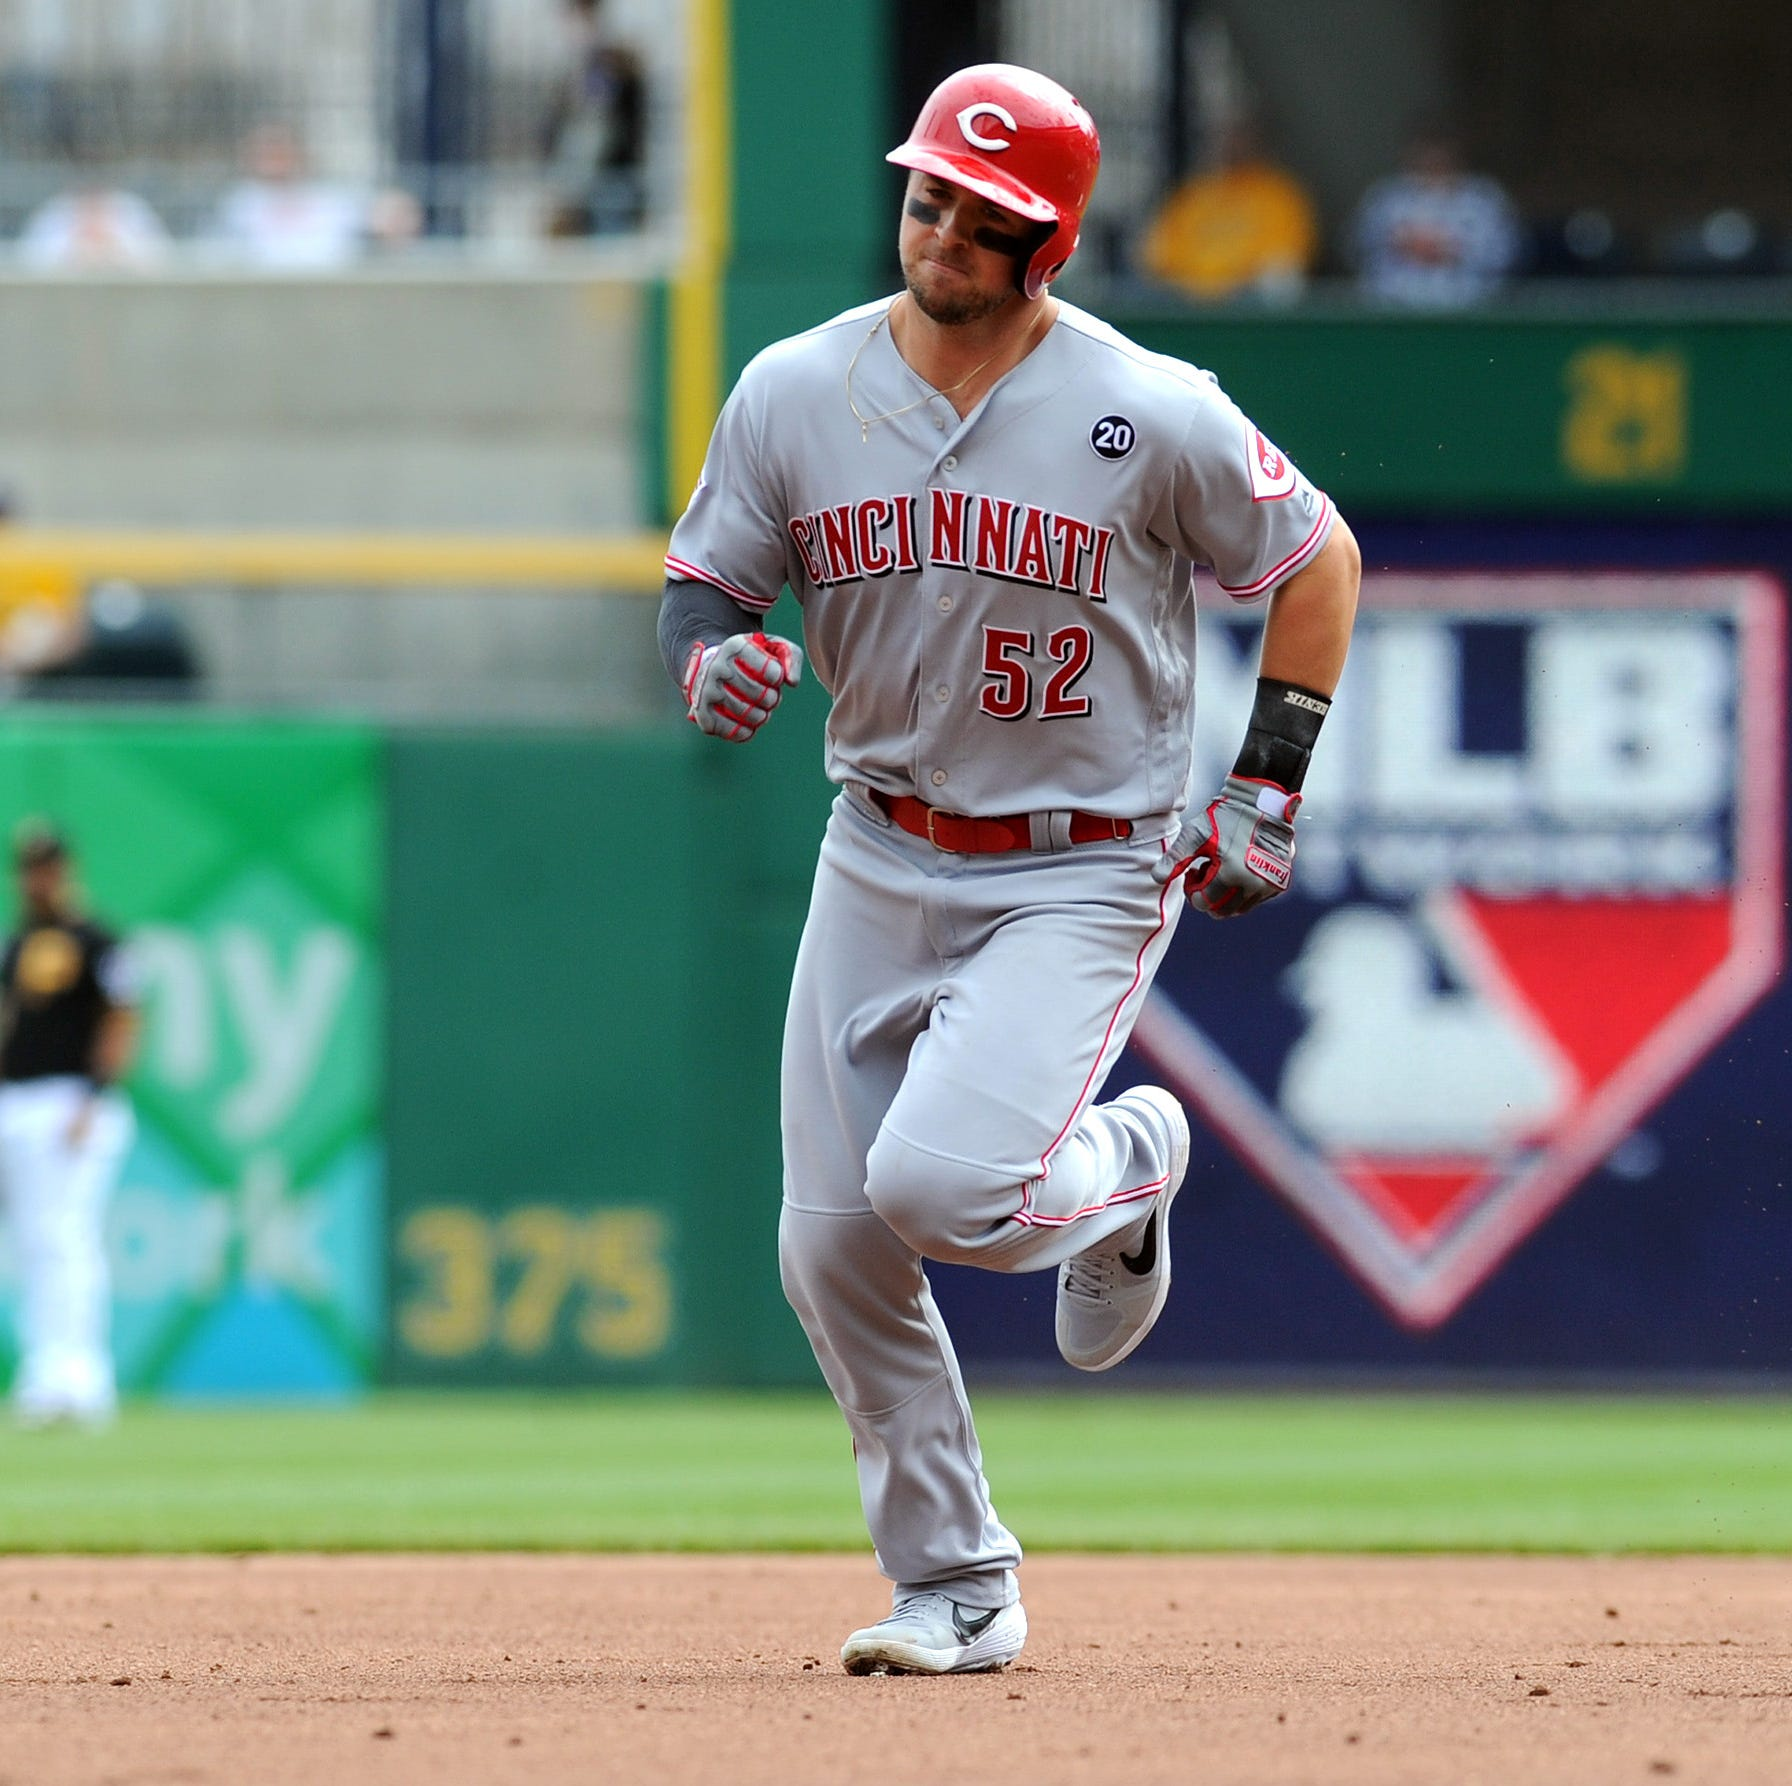 Kyle Farmer's home run ends scoreless streak; Cincinnati Reds' losing streak continues